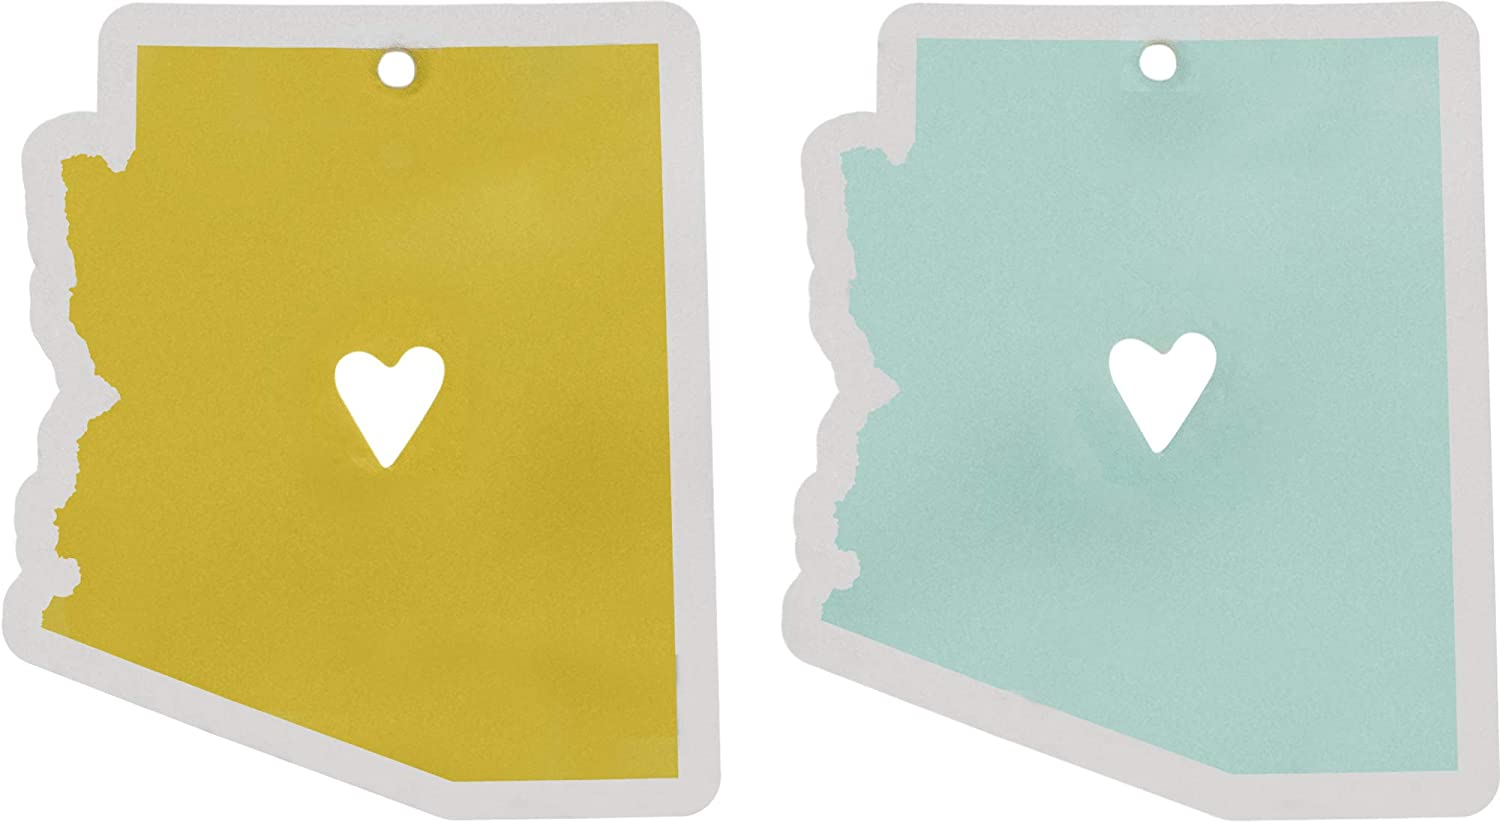 About Face Designs State of Arizona Silhouette On Mustard and Sky Blue Automotive Foam Air Freshener Set of 2